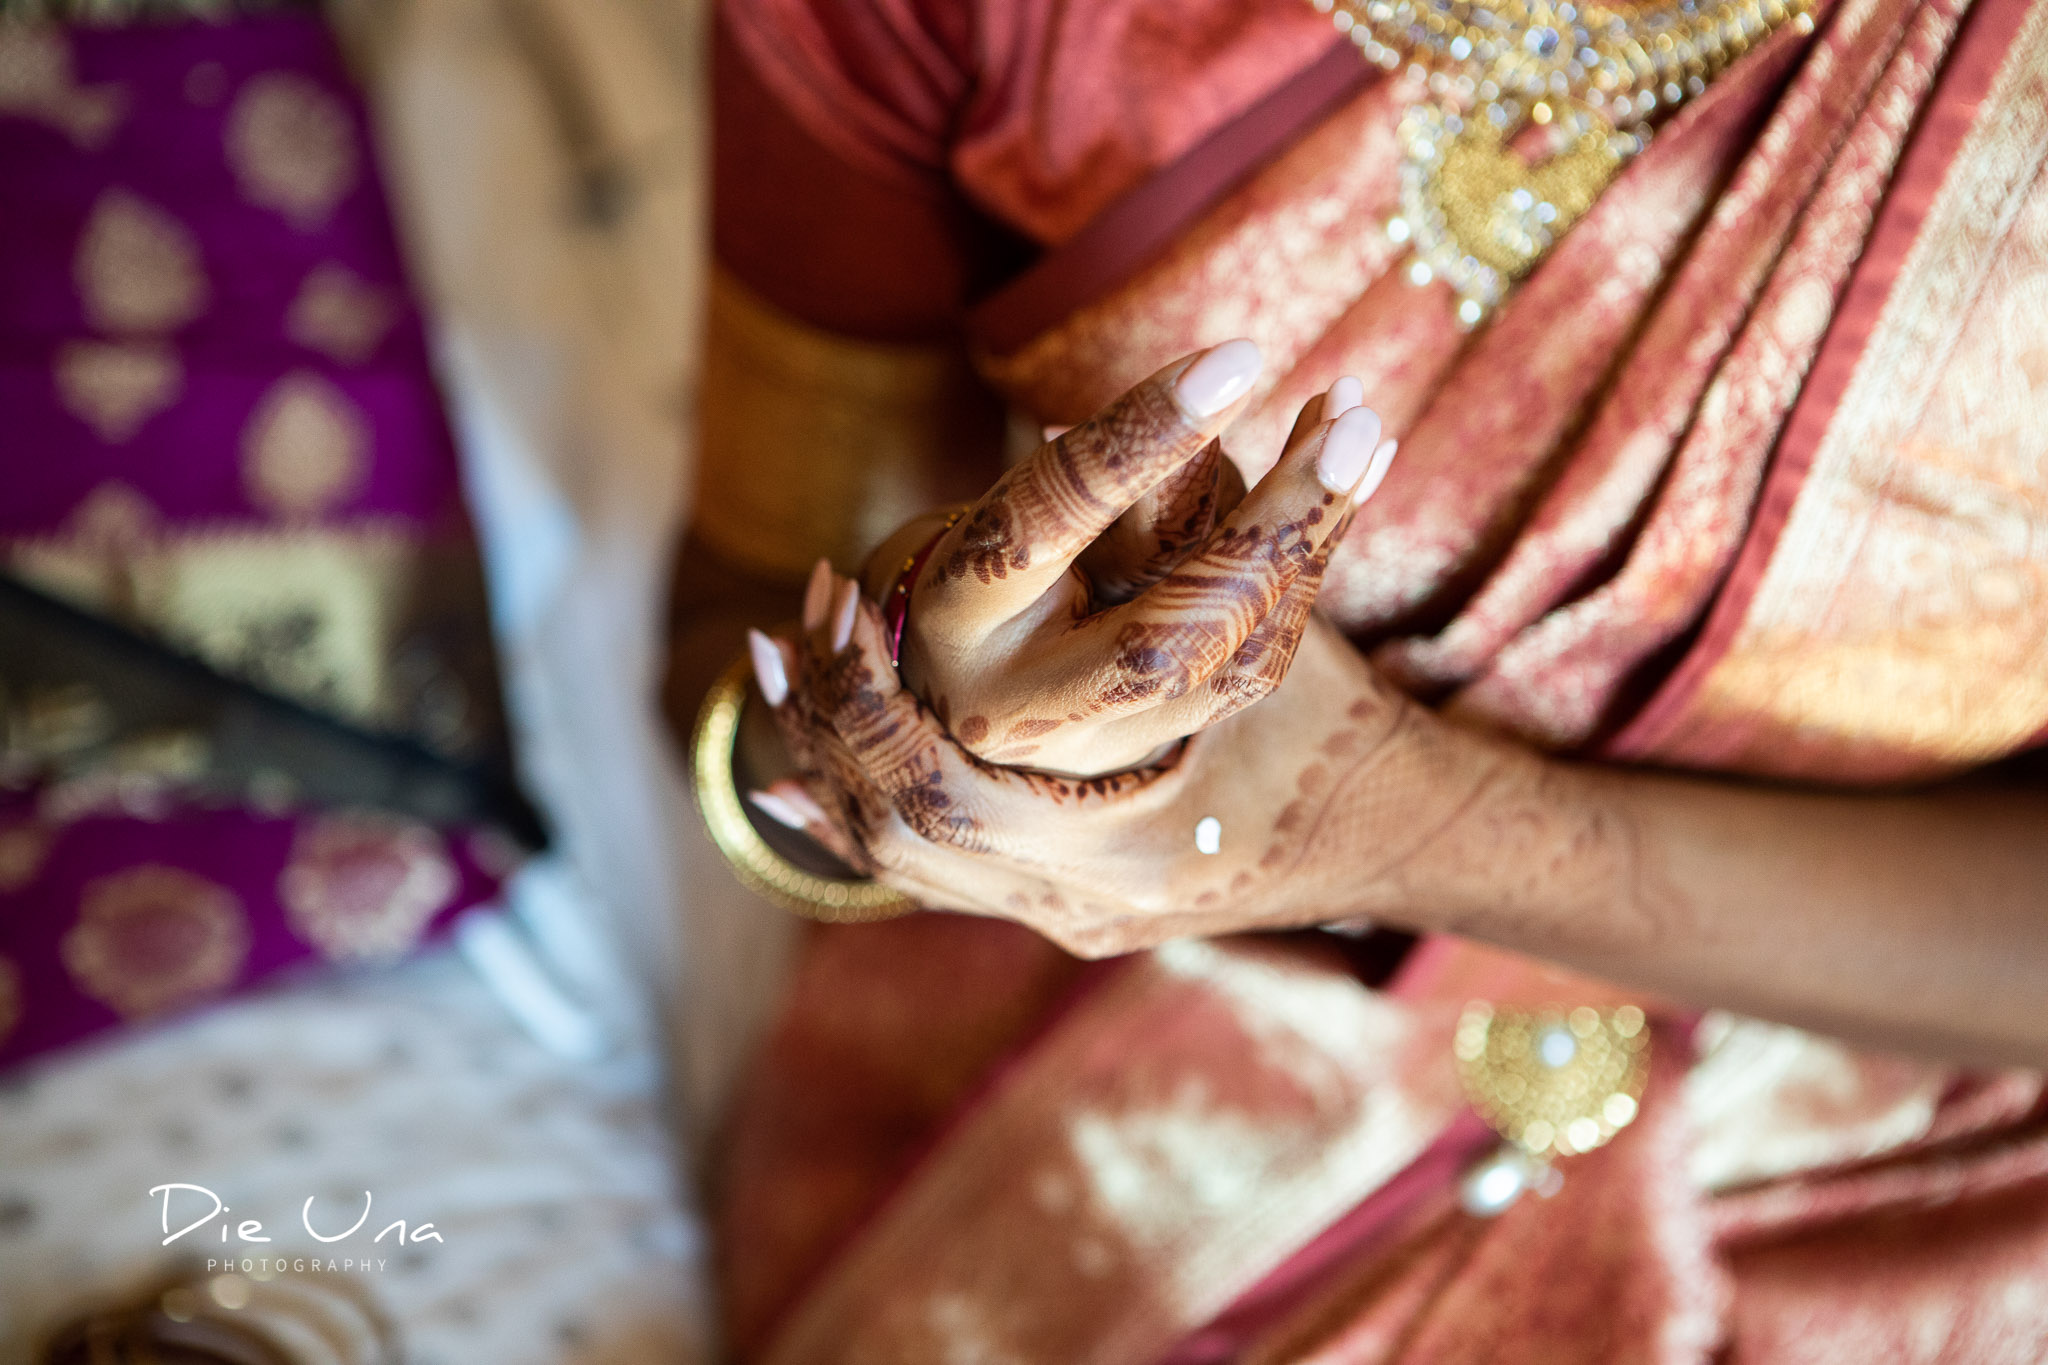 bride putting on wedding bracelets while wearing saree.jpg